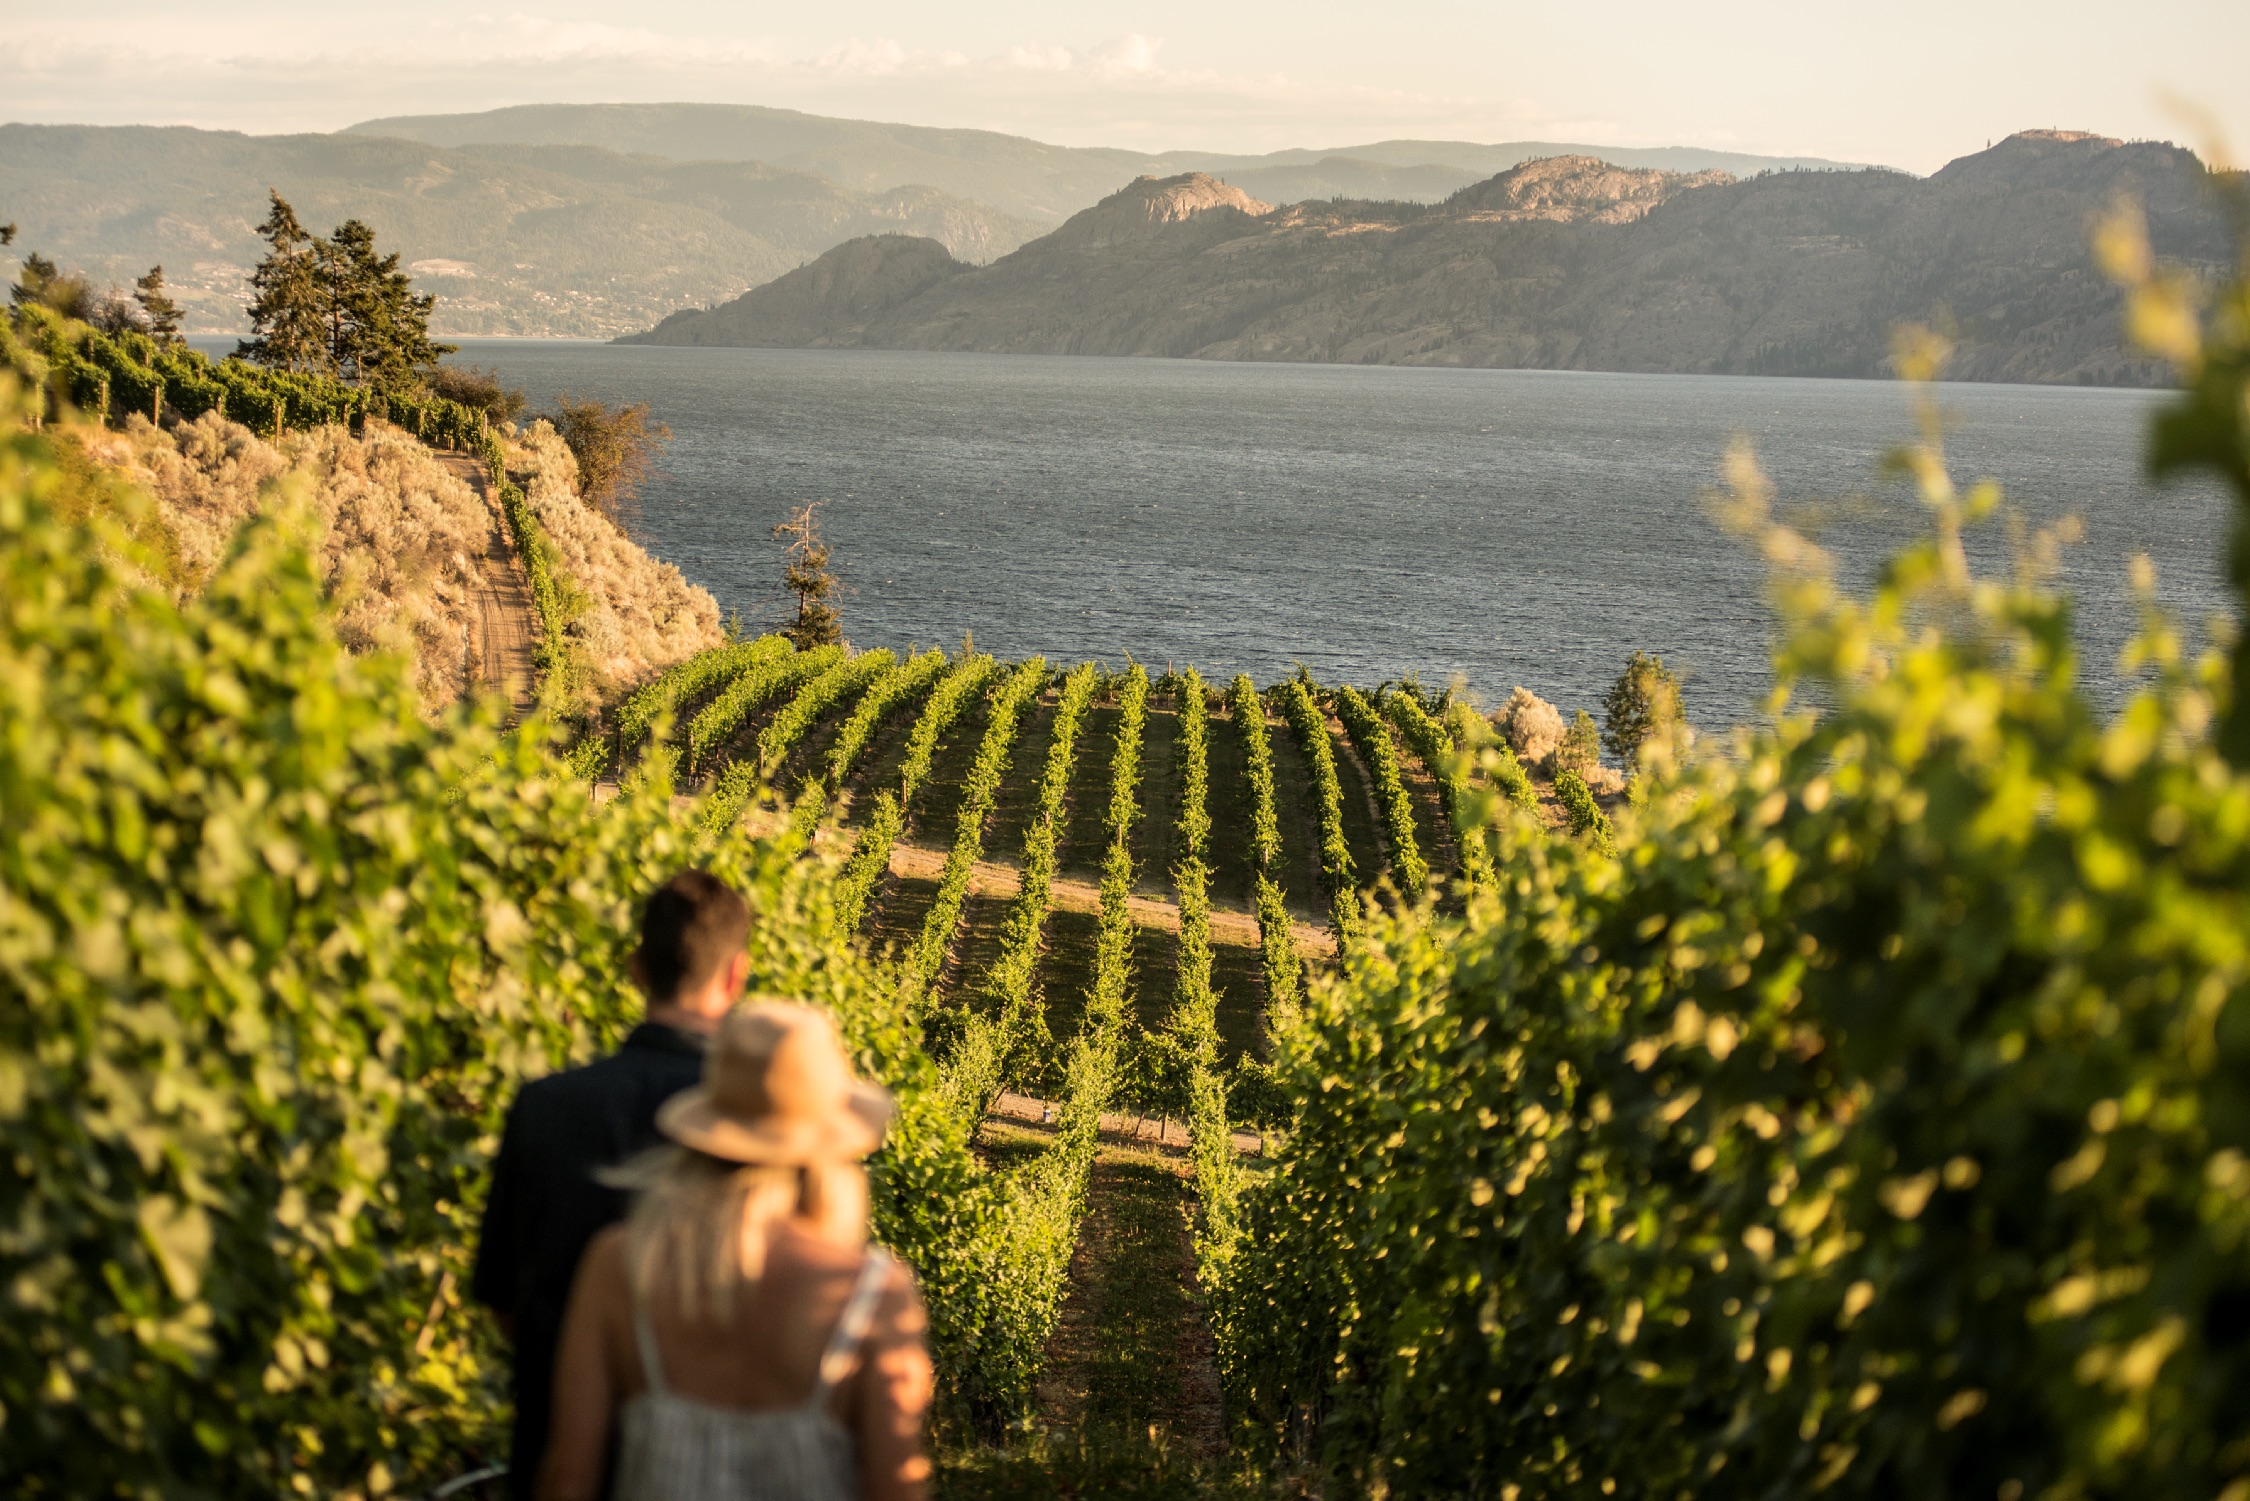 A young couple walks in the Evolve Cellars vineyard overlooking Okanagan Lake in Summerland, BC.